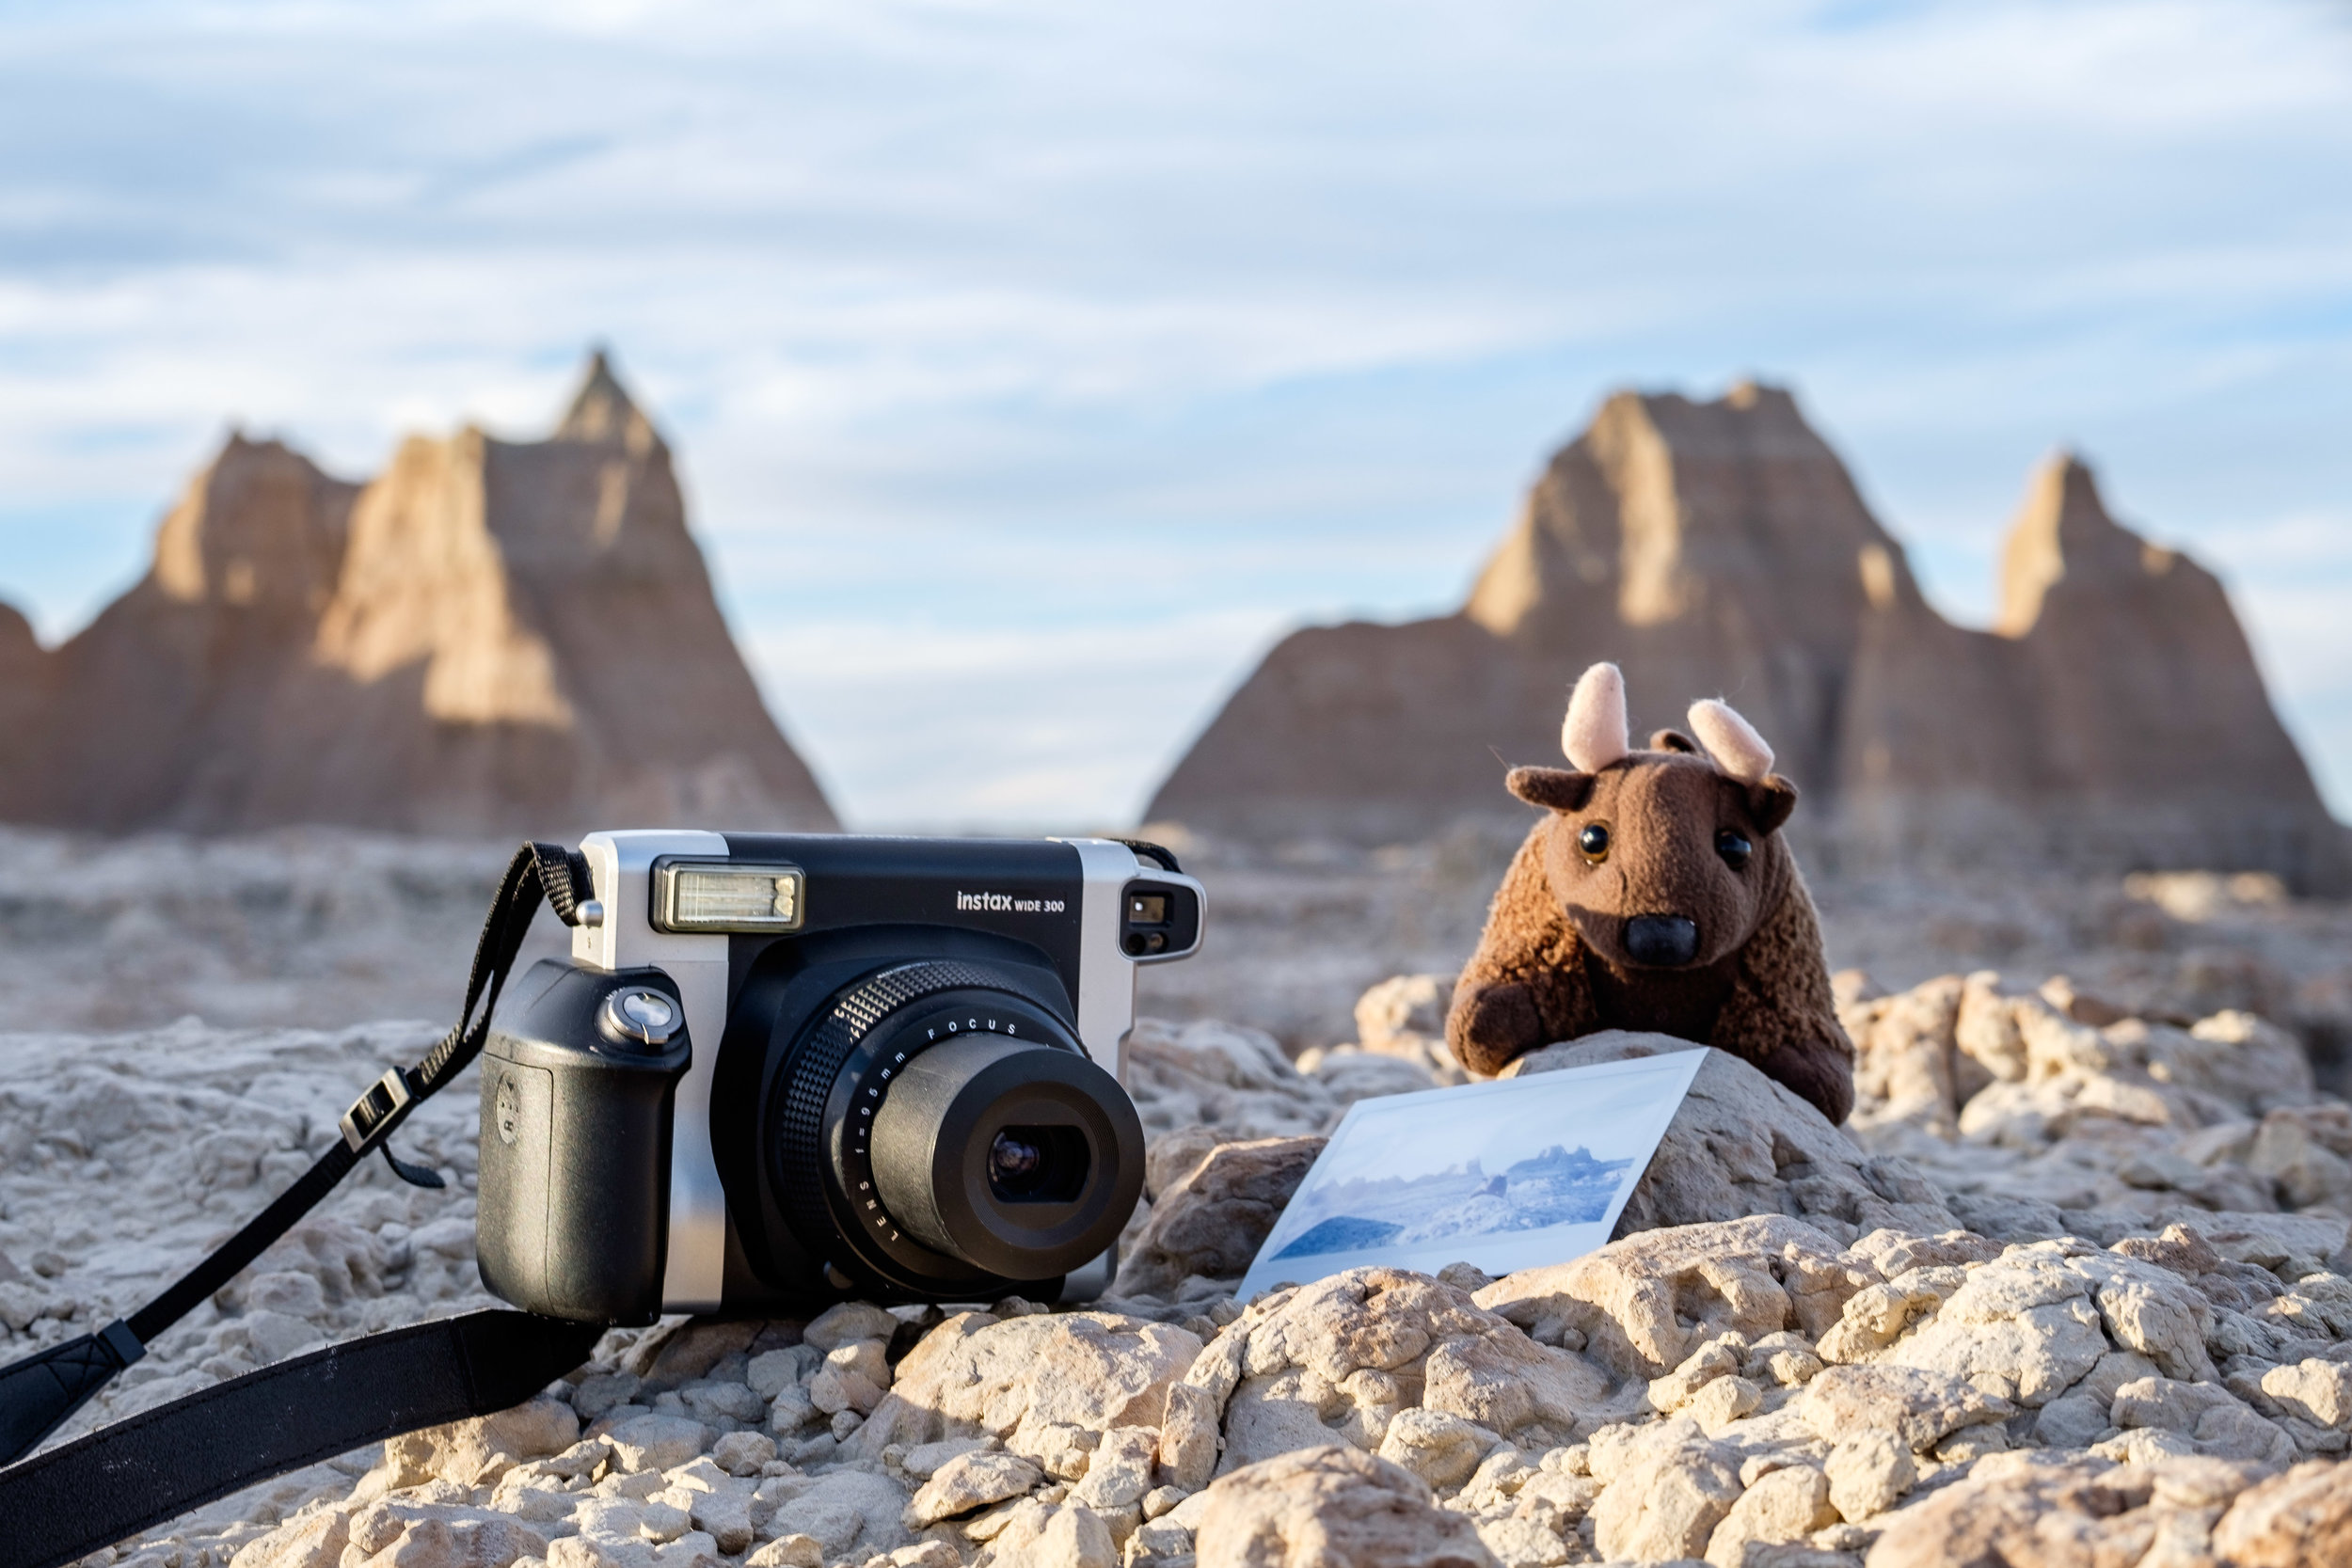 Buddy Bison and Instax in Badlands National Park in South Dakota.